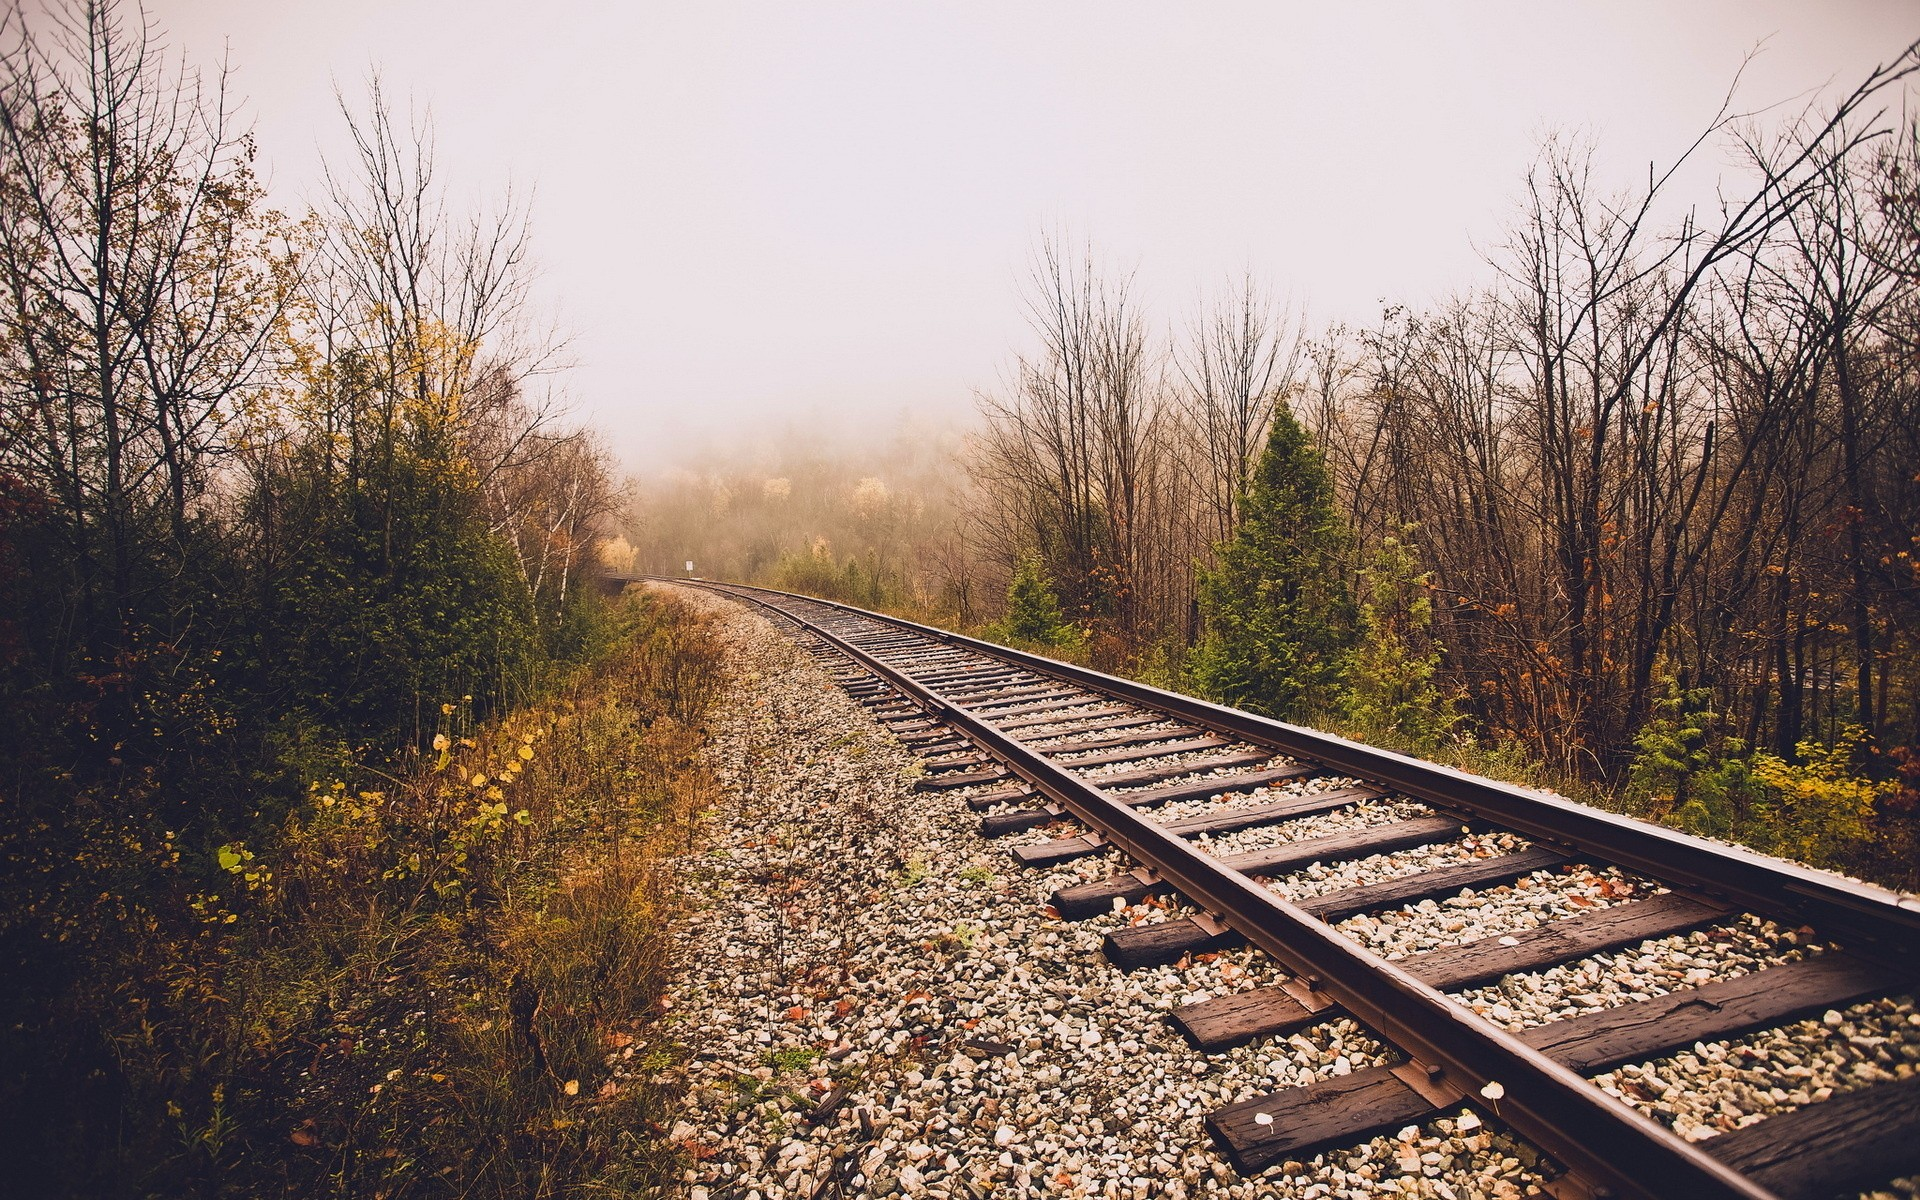 Train track 2 hd photography 4k wallpapers images backgrounds photos and pictures - Track wallpaper hd ...